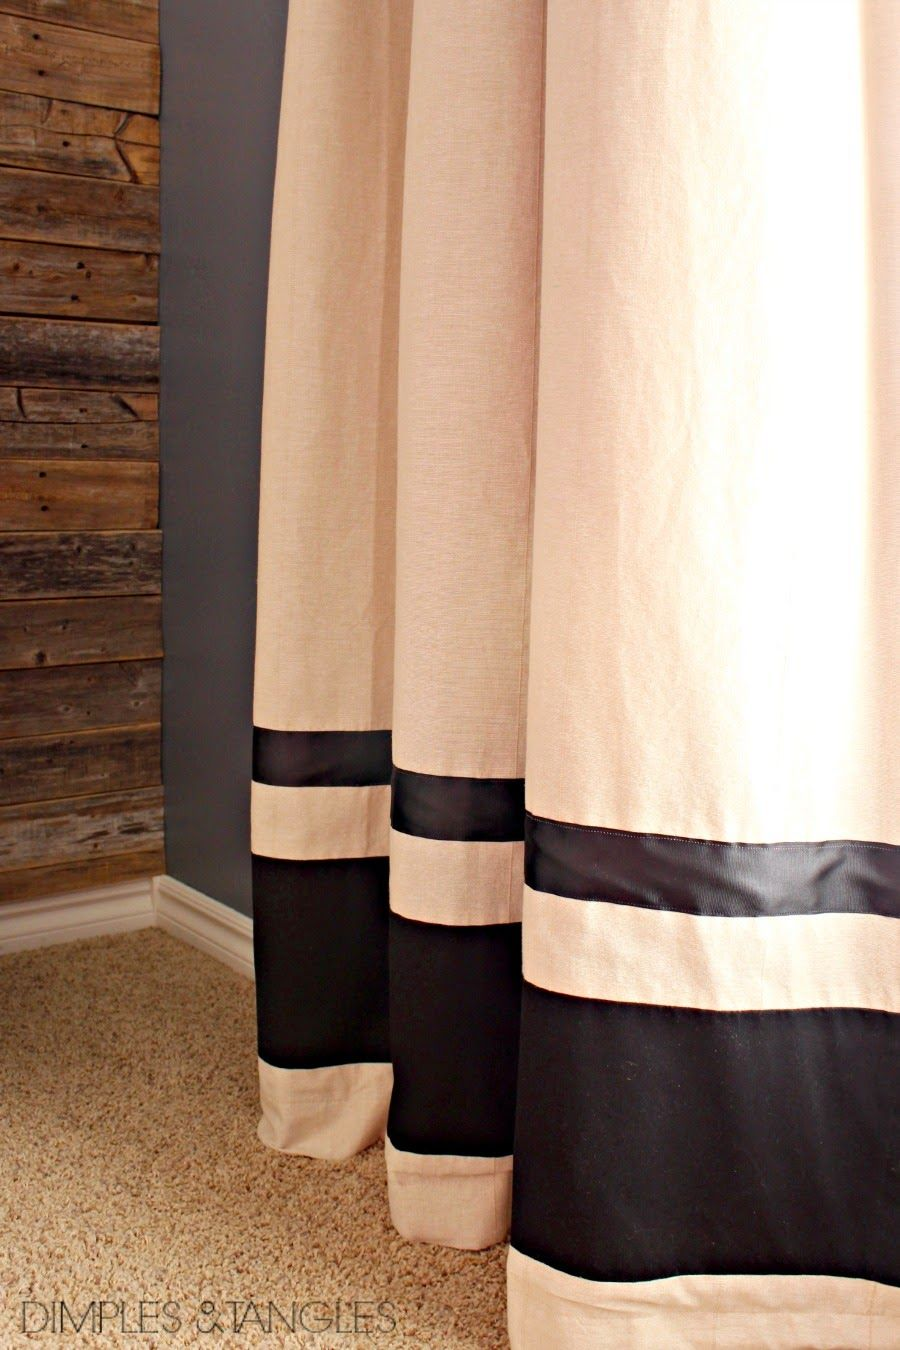 Customize Ikea Curtain Panels How To Add Length And Blackout Lining CurtainsLiving Room